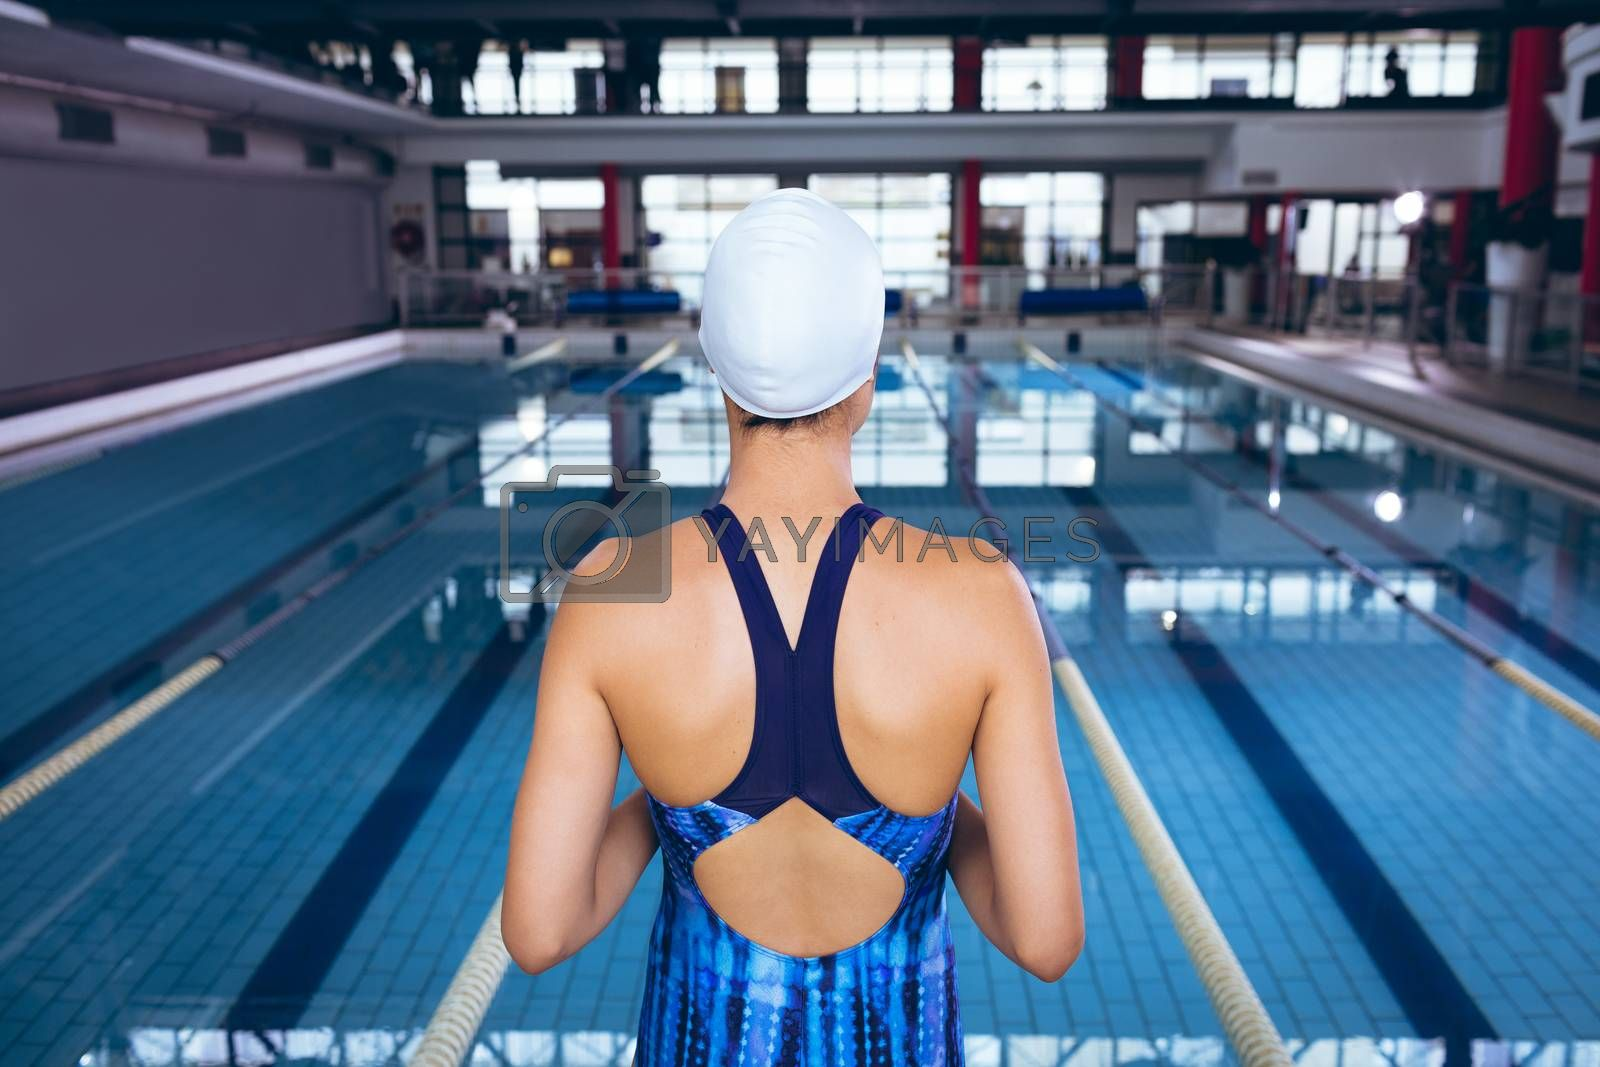 Rear view of a woman wearing a swimsuit and swimming cap standing by an olympic sized pool inside a stadium. Bright modern gym with fit healthy people working out and training